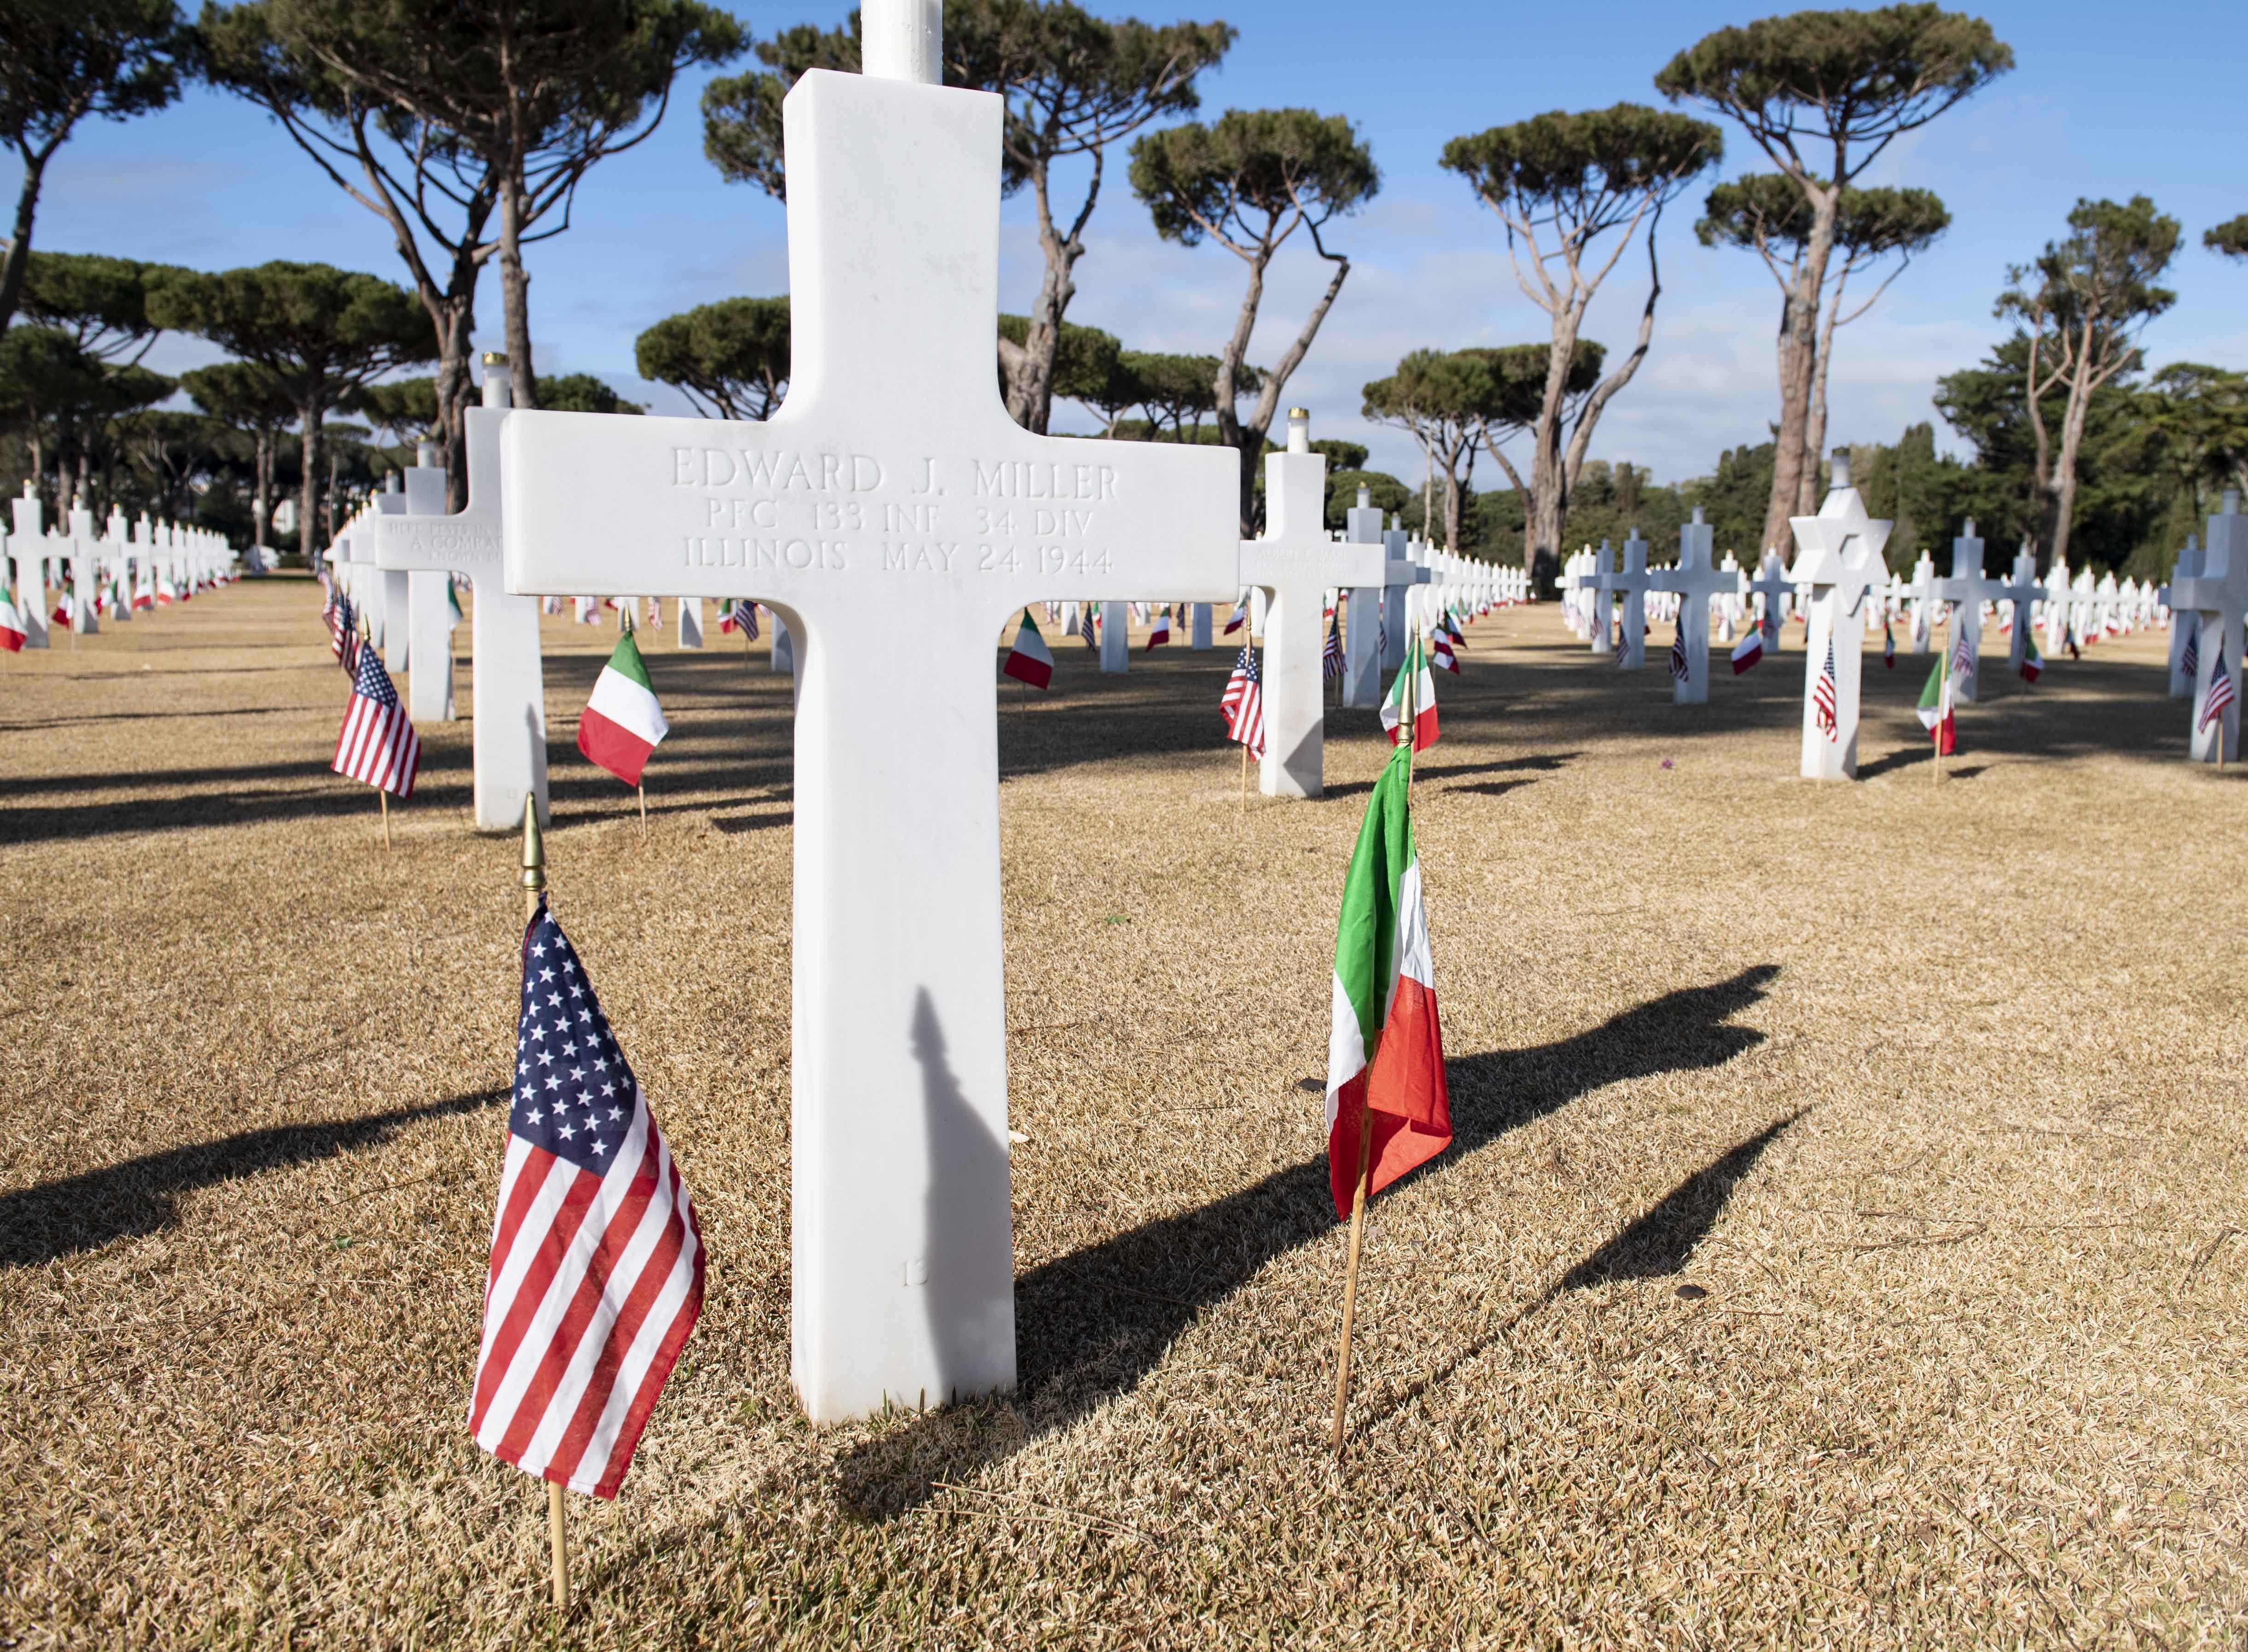 NETTUNO, Italy (Jan. 22, 2019) A headstone at Anzio and Nettuno at the Sicily-Rome American Cemetery in Nettuno, Italy during a ceremony commemorating the 75th Anniversary of Allied Landings at Anzio and Nettuno, Jan. 22, 2019. The ceremony marks the beginning of a year of scheduled events to commemorate the 75th anniversary of WWII. (U.S. Navy photo by Mass Communication Specialist 2nd Class Deanna C. Gonzales/Released)